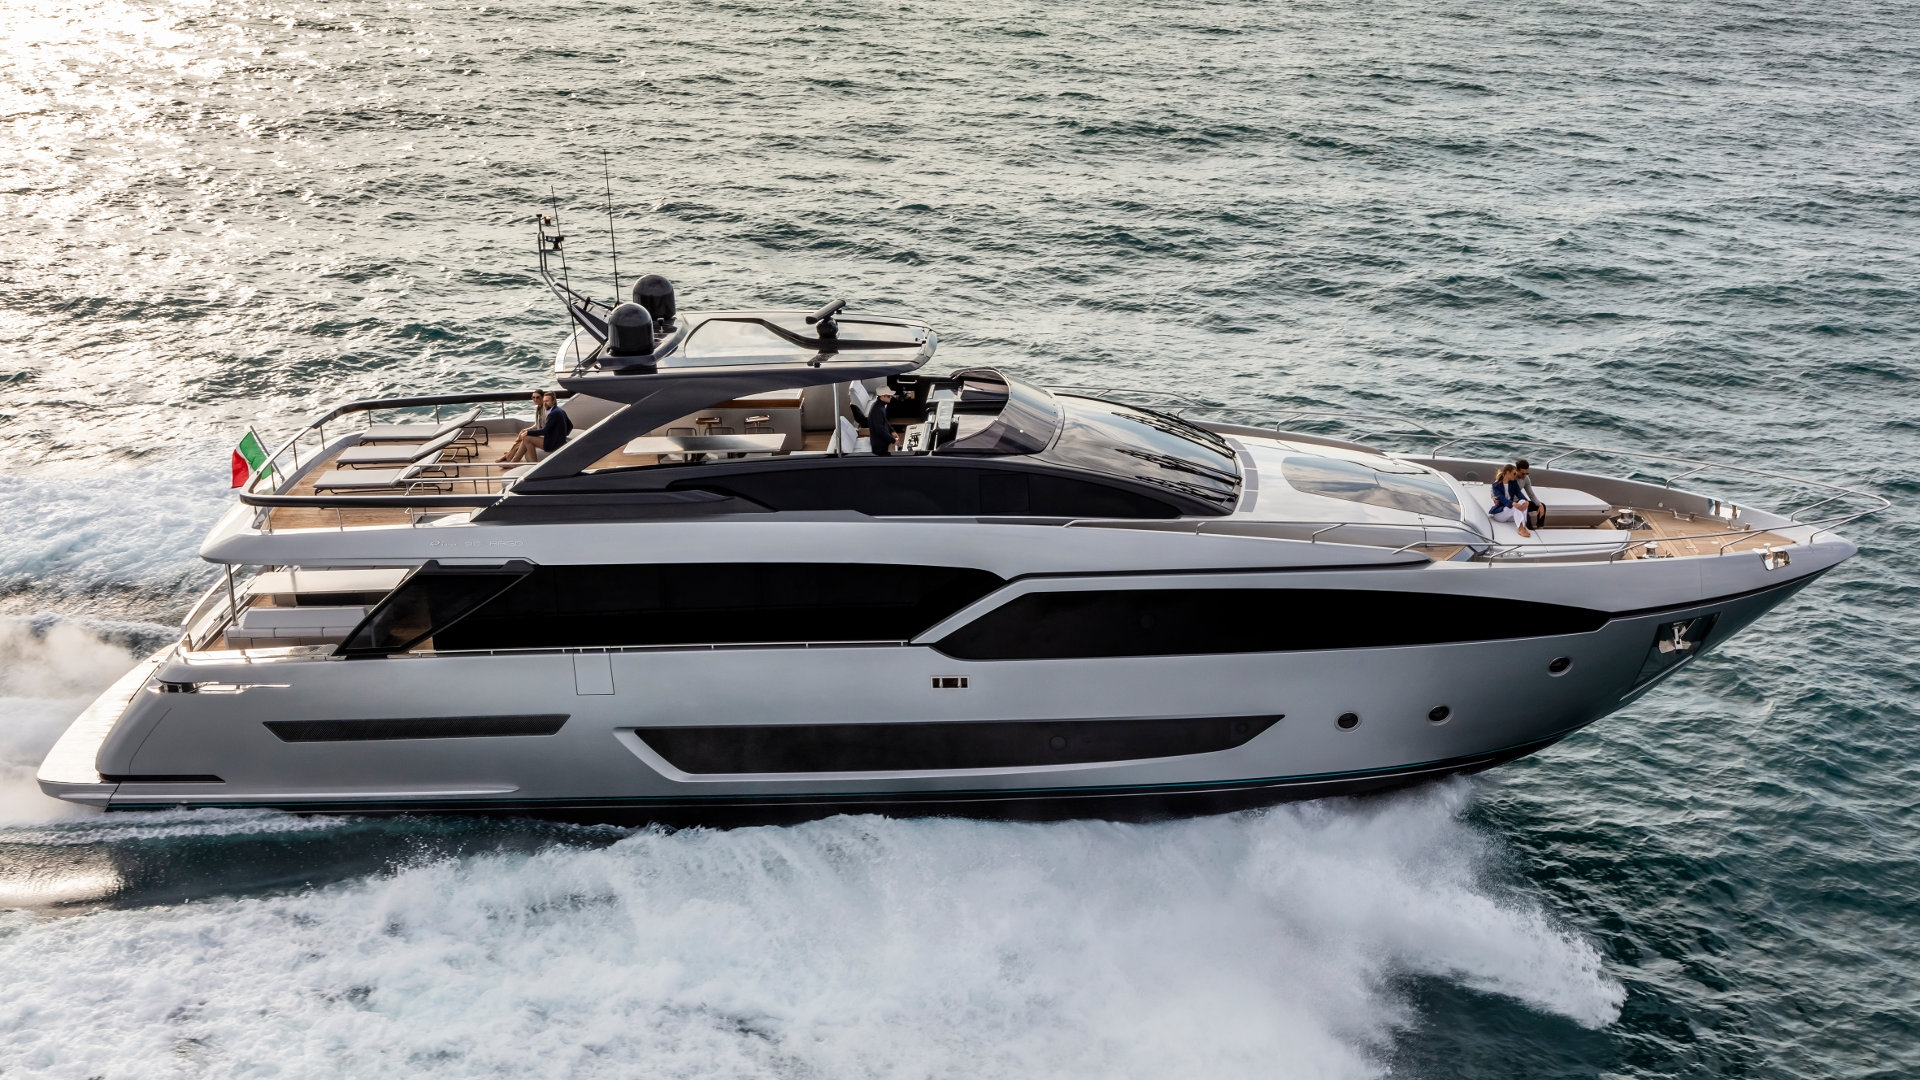 Riva 90 Argo Yacht for Sale - Profile Running Shot